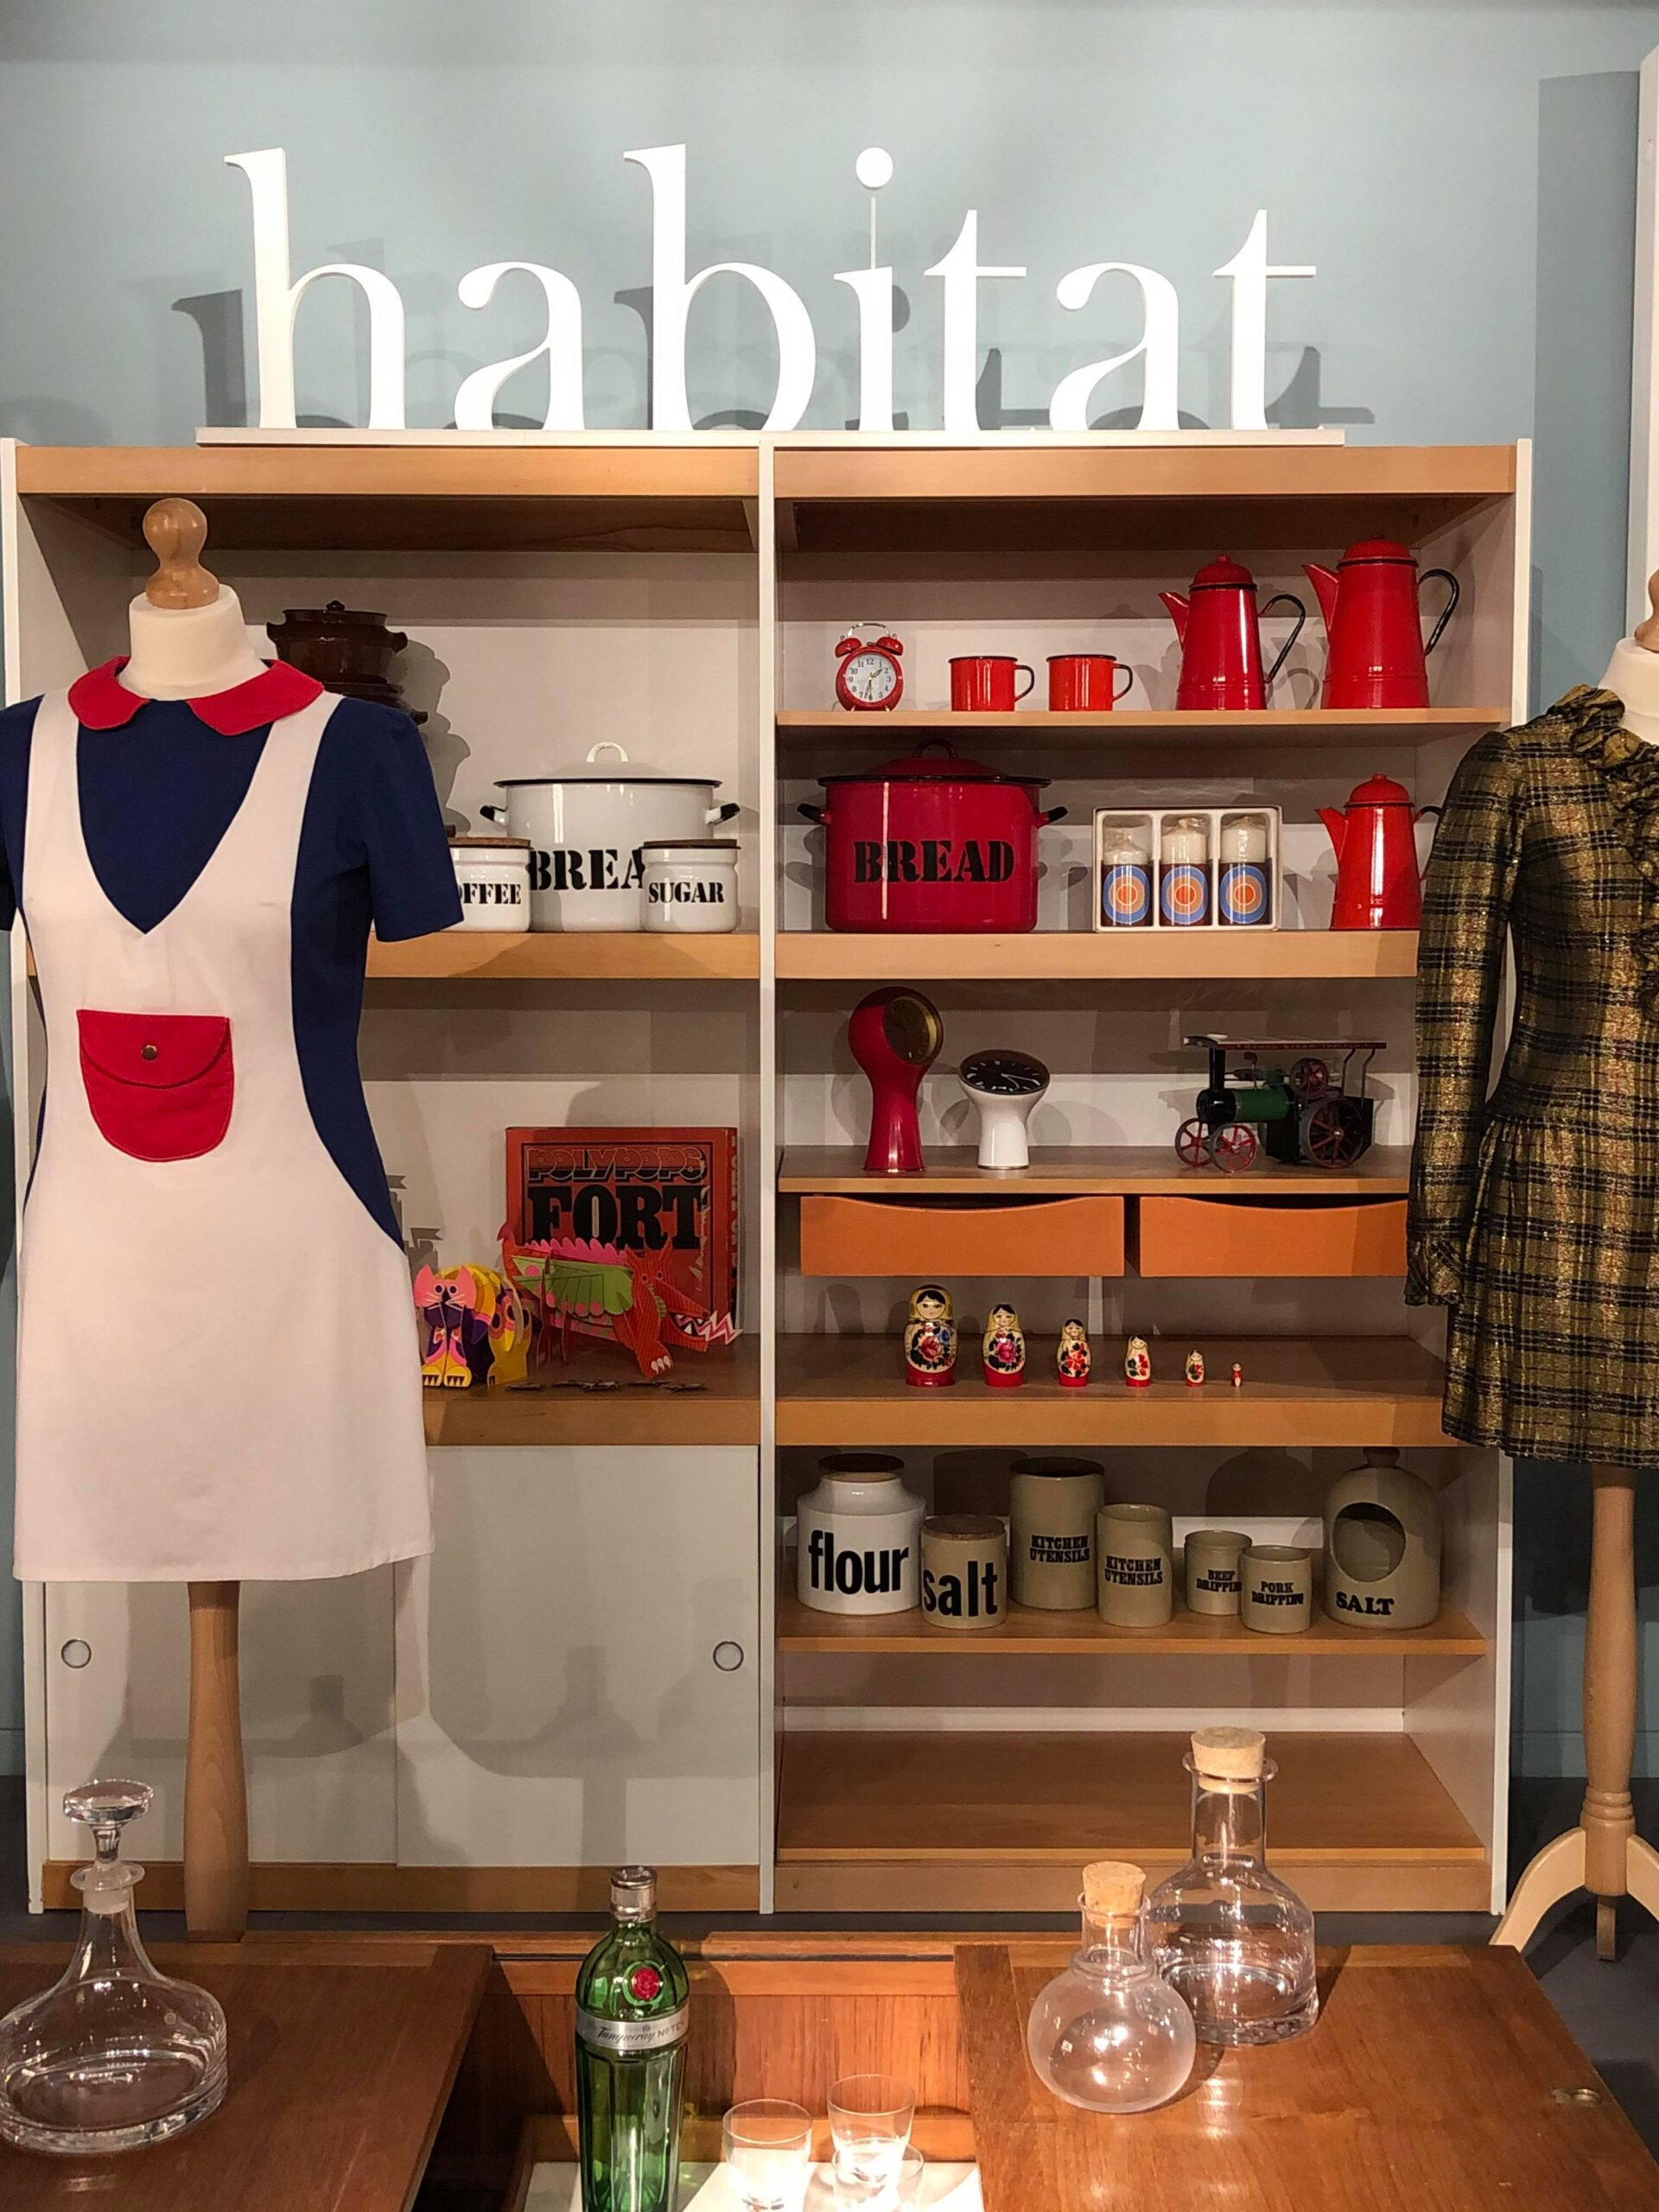 This photo shows a pale blue background wall in front of which a large shelving unit stands. On top of the uni is a large white 'habitat' sign and the shelves hold several household habitat designs including bread bins, alarm clocks, and coffee pots. In front of the shelves are two mannequins, one wearing a blue red and white pinafore style minidress, and one wearing a shiny gold and brown checked lame party dress.